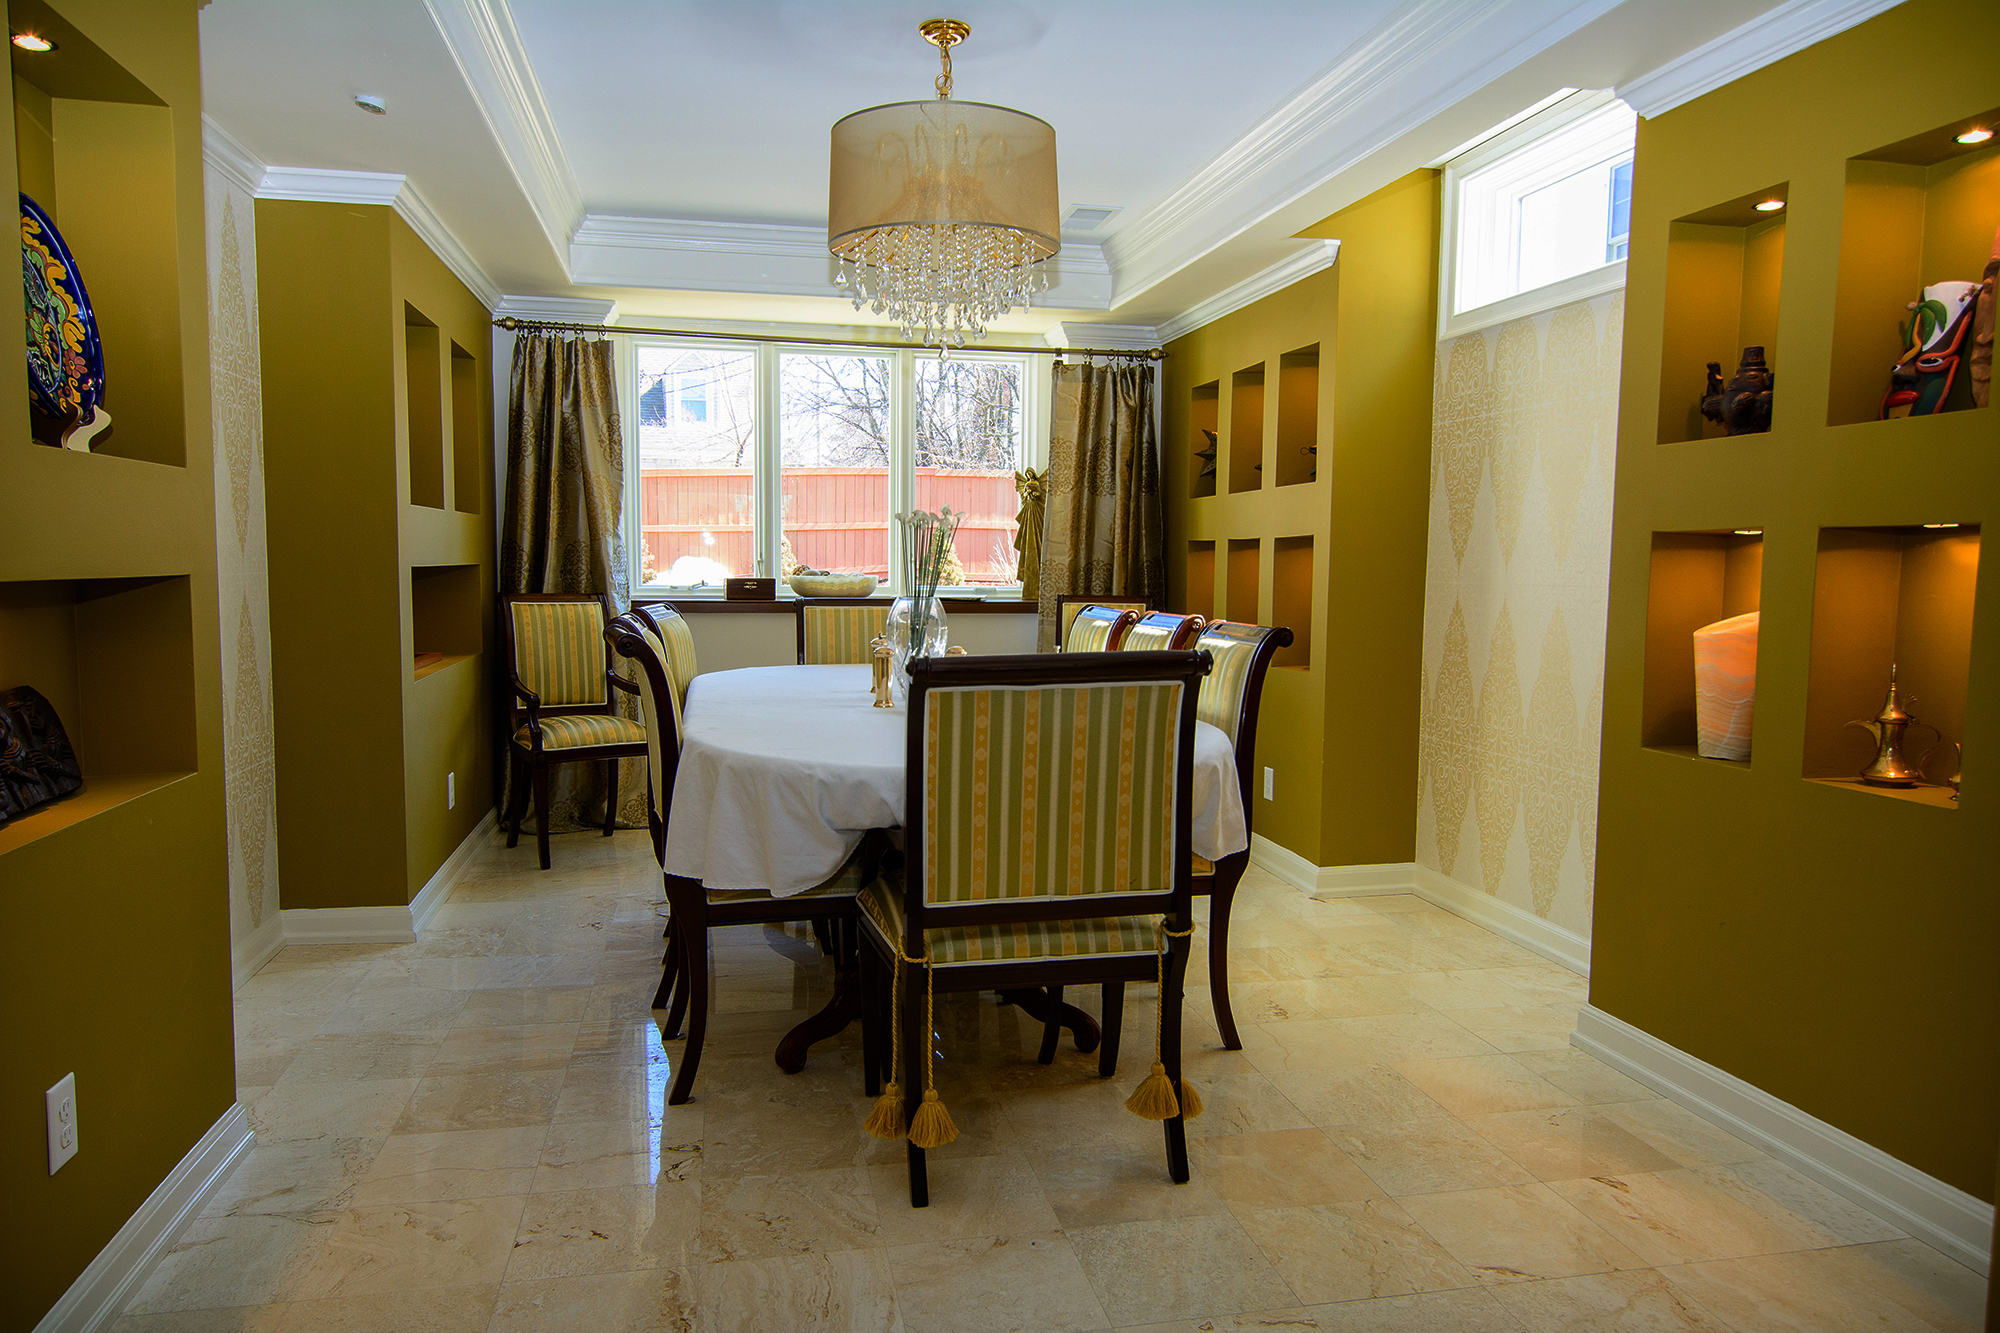 WHITEFISH BAY DINING ROOM ADDITION